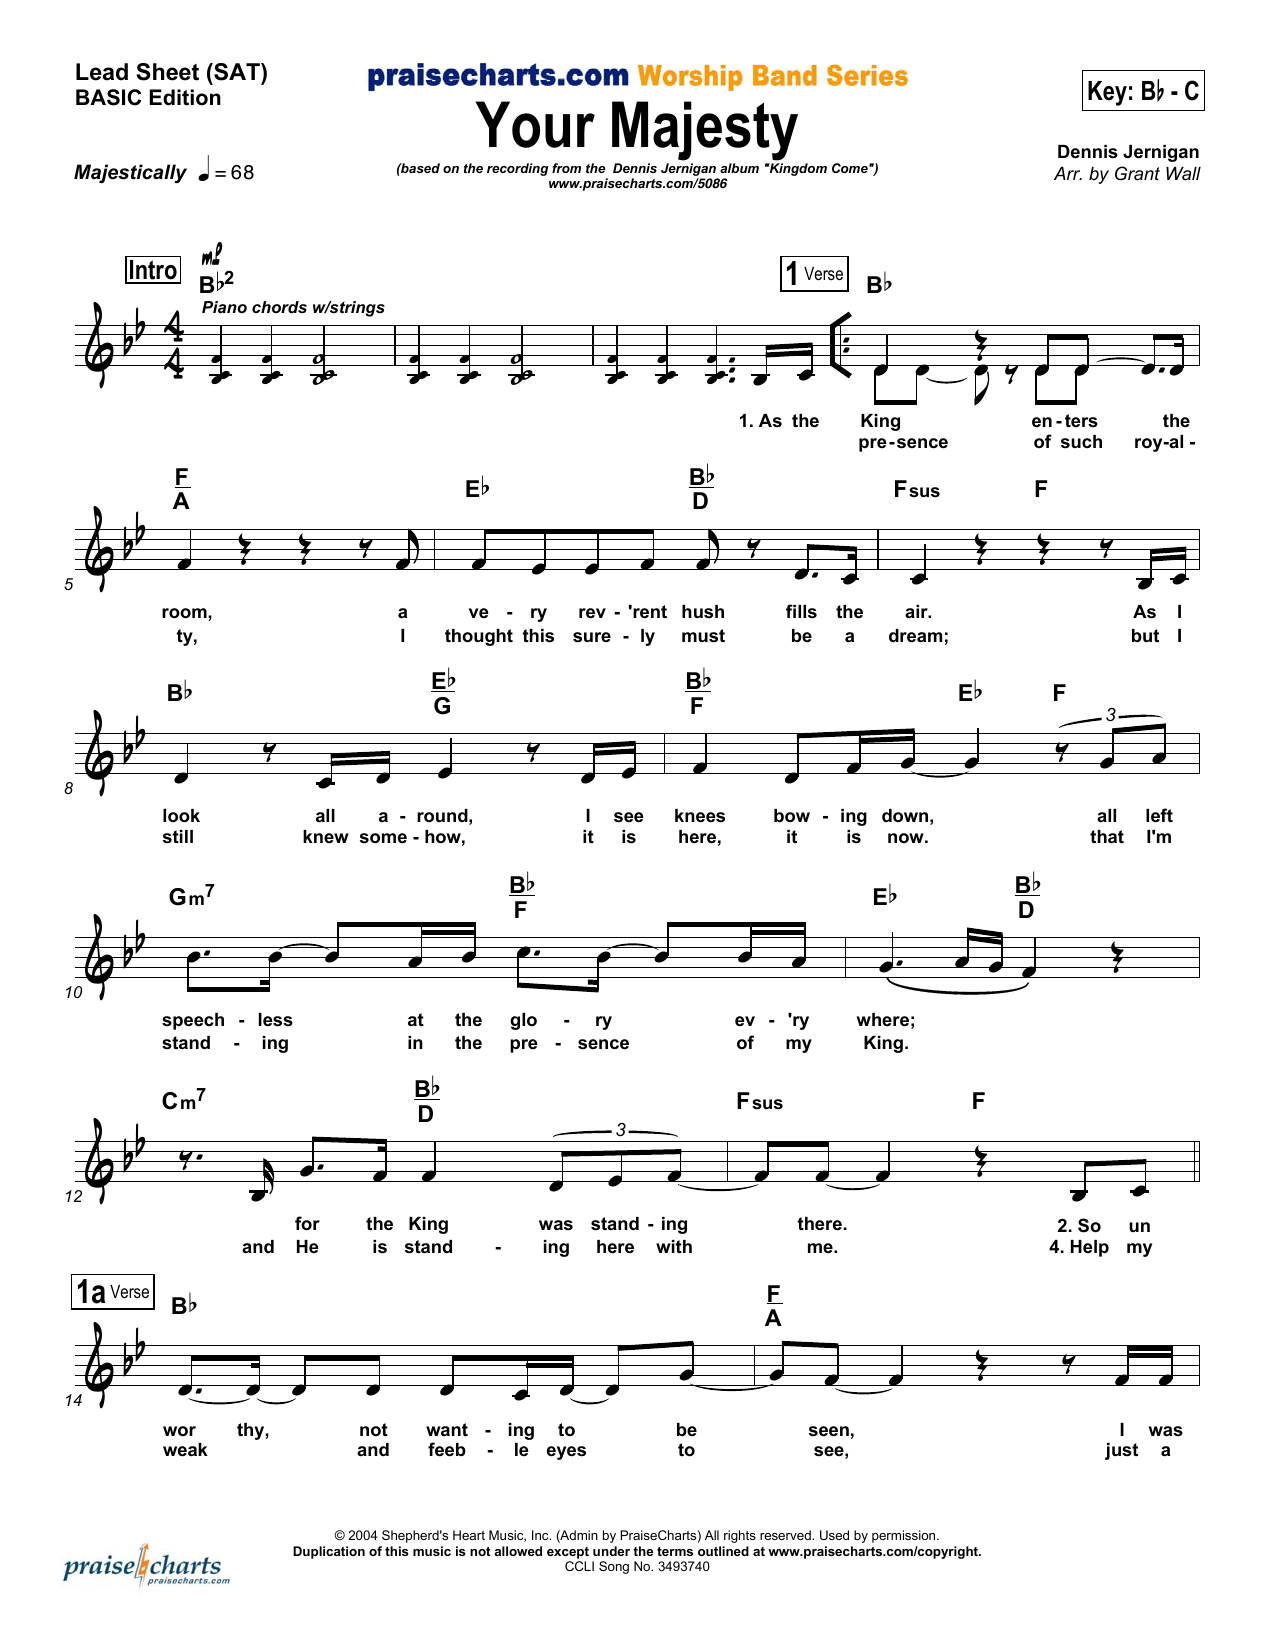 Your Majesty Sheet Music